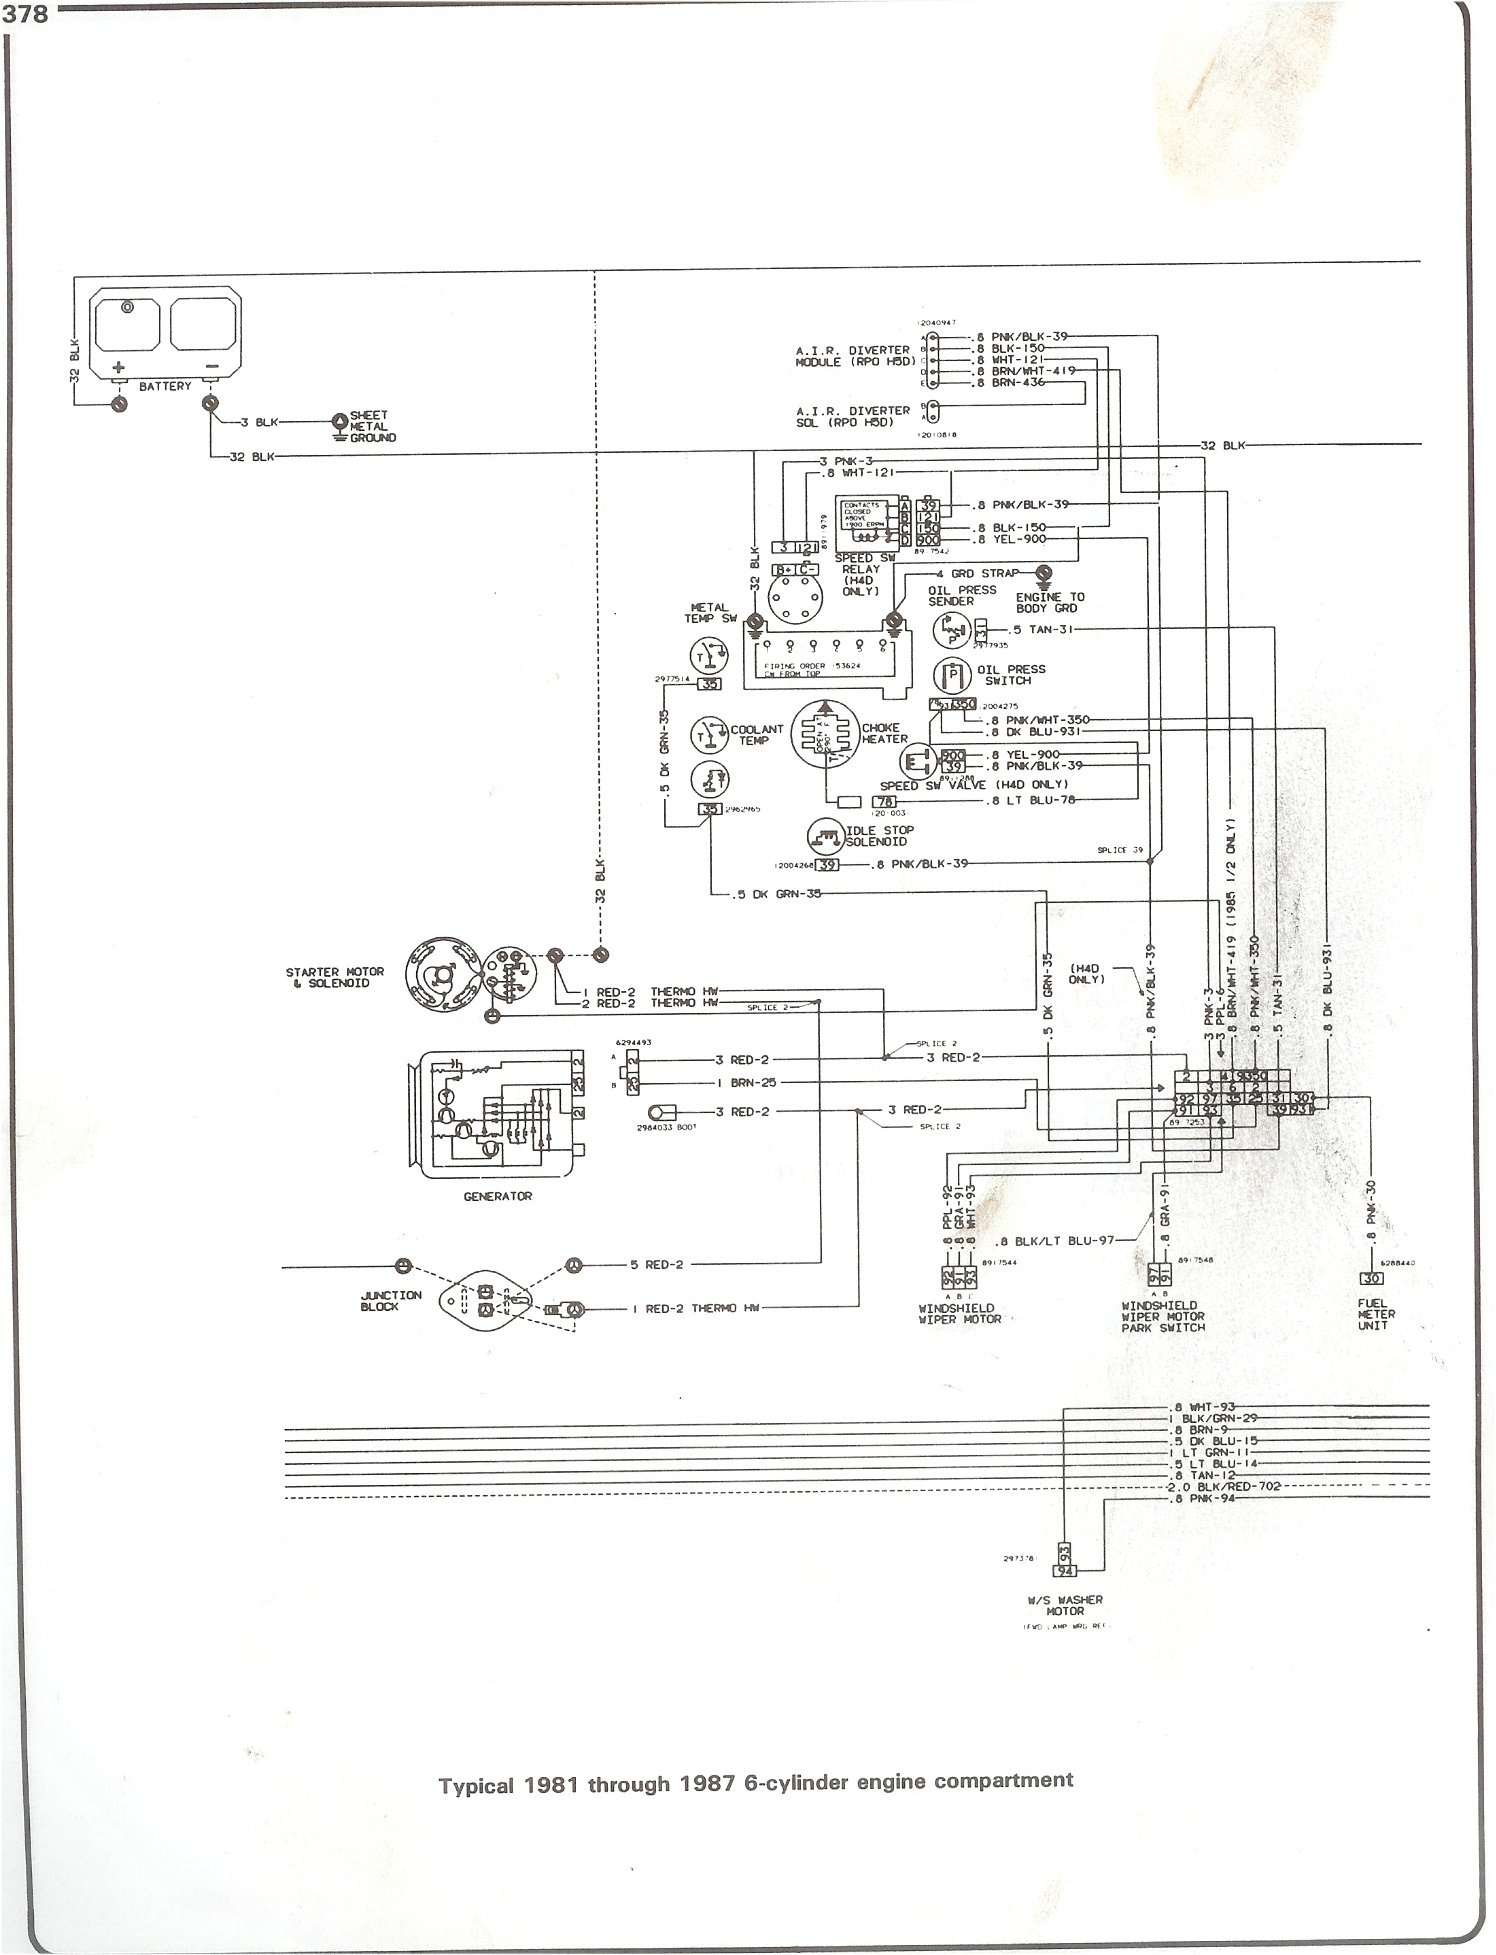 Complete 73 87 Wiring Diagrams 1990 Gmc Sierra 1500 Diagram 81 I6 Engine Compartment